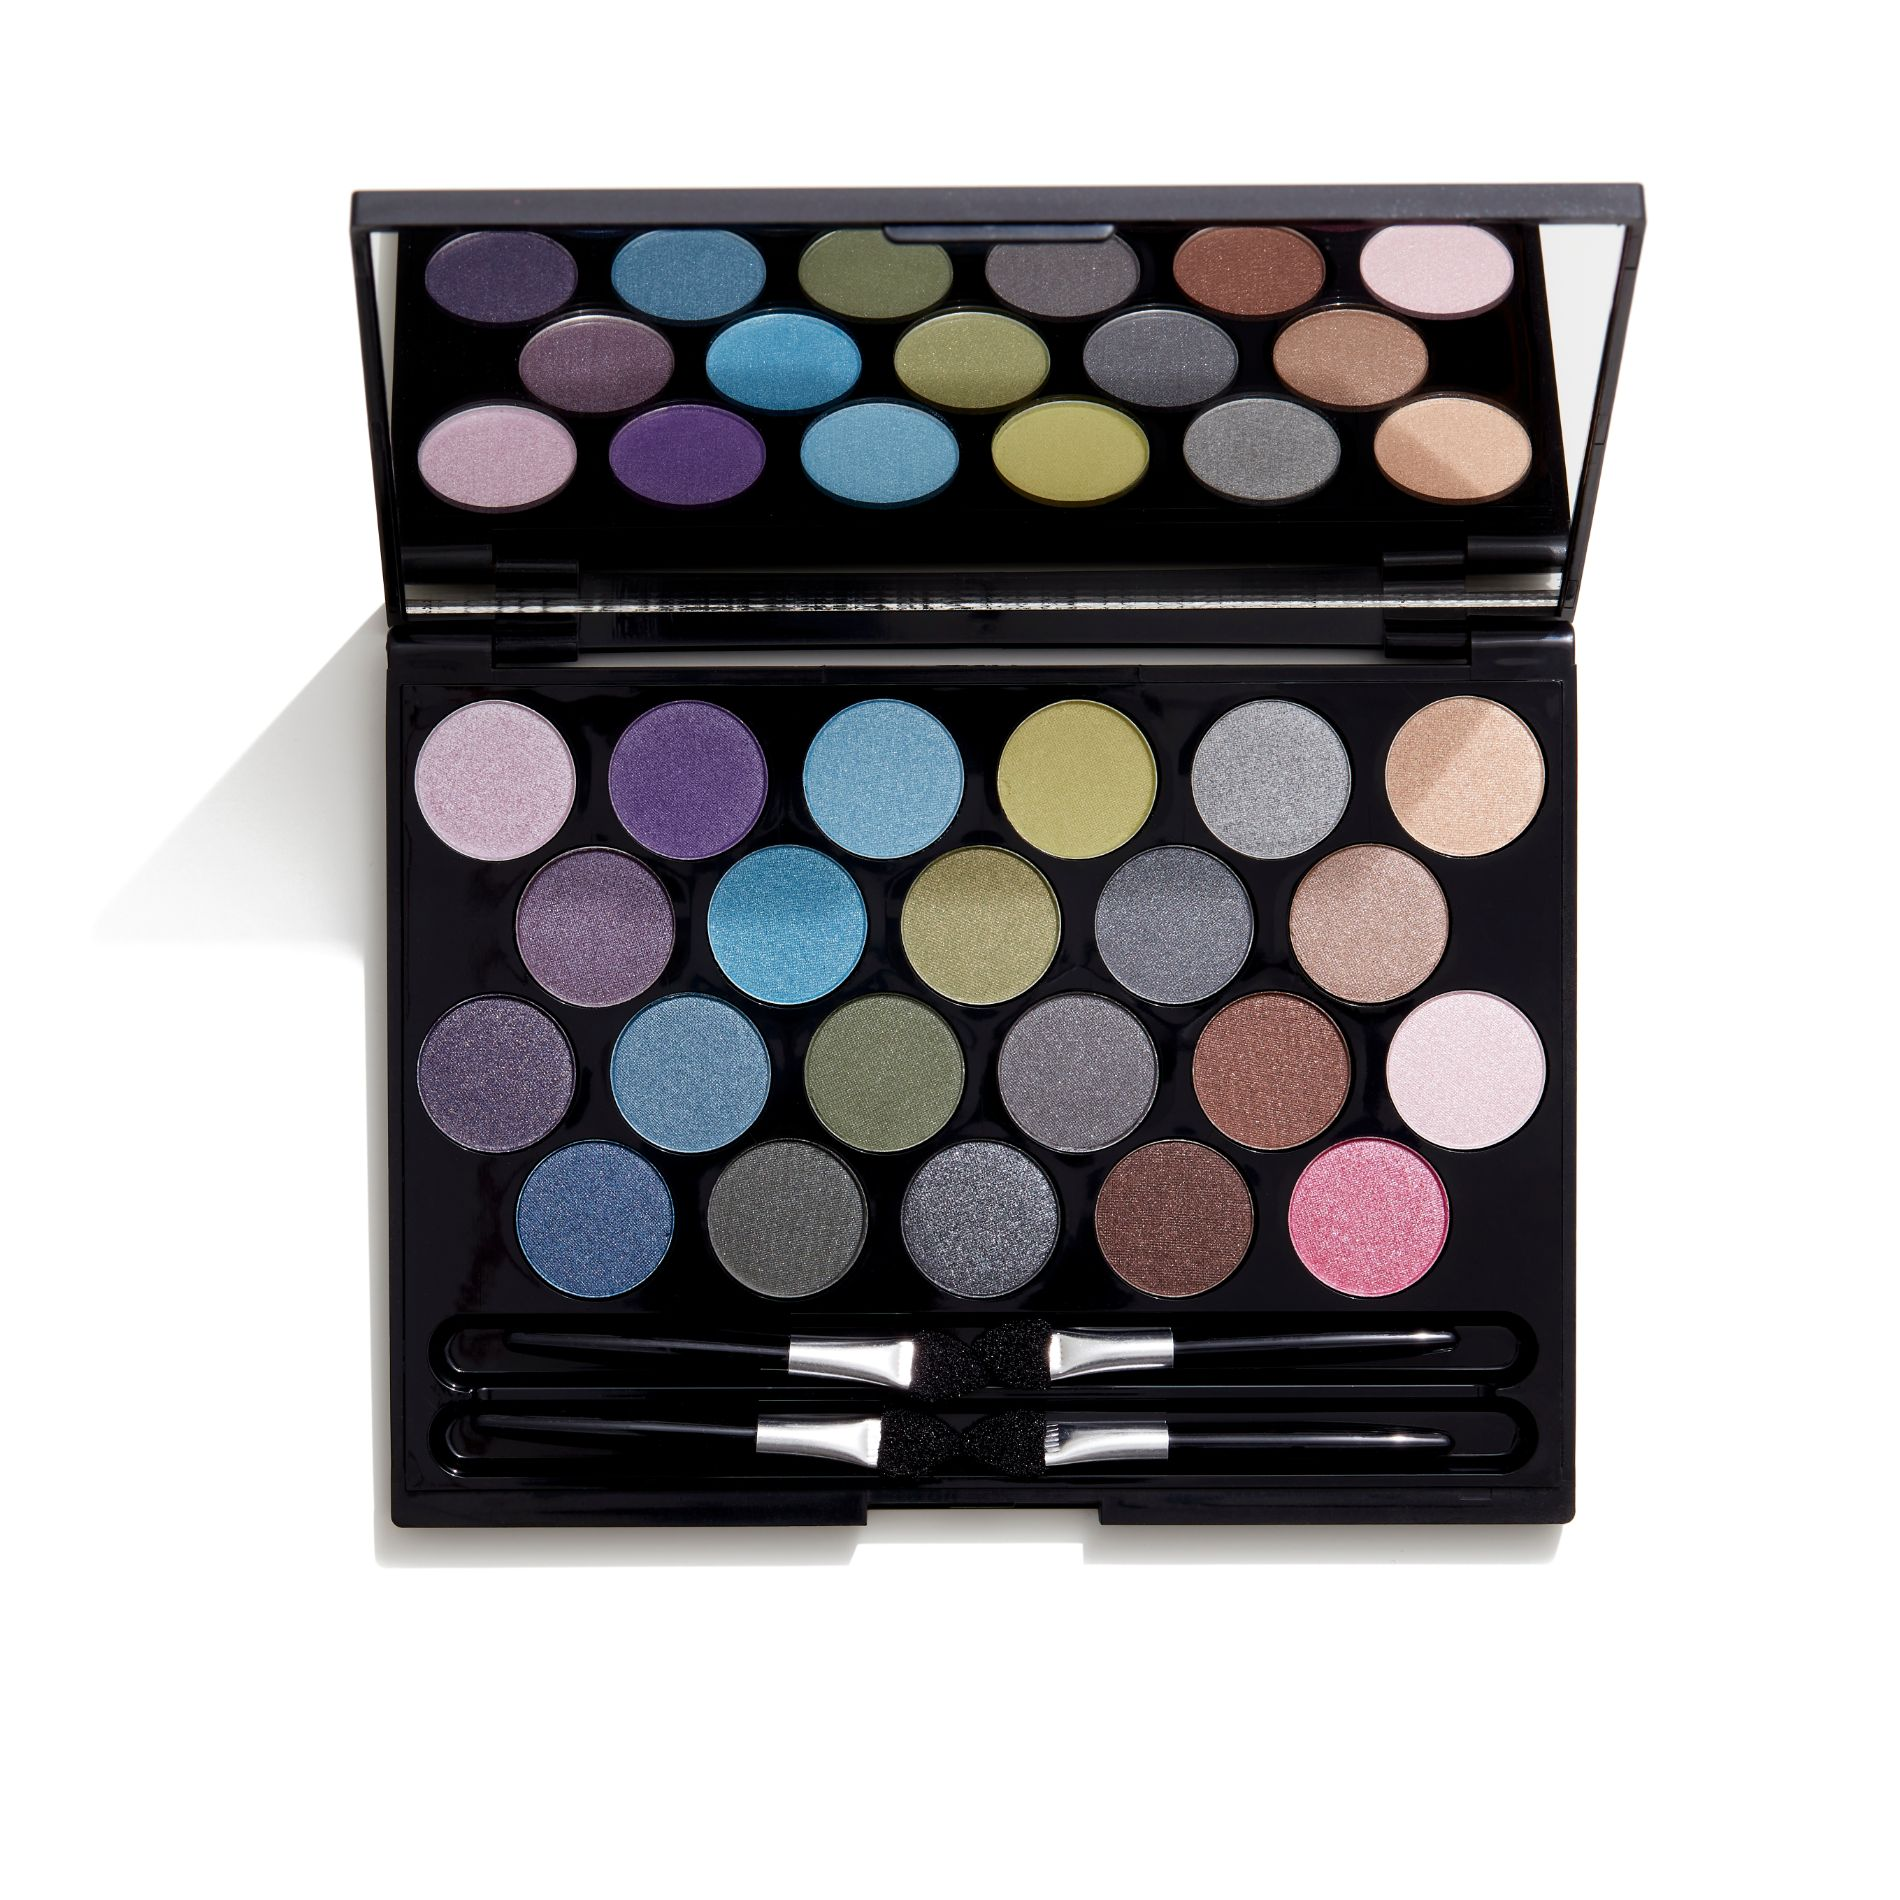 Image of   GOSH GOSH 22 Eye Shadows in compact - 02 Smokey Shades